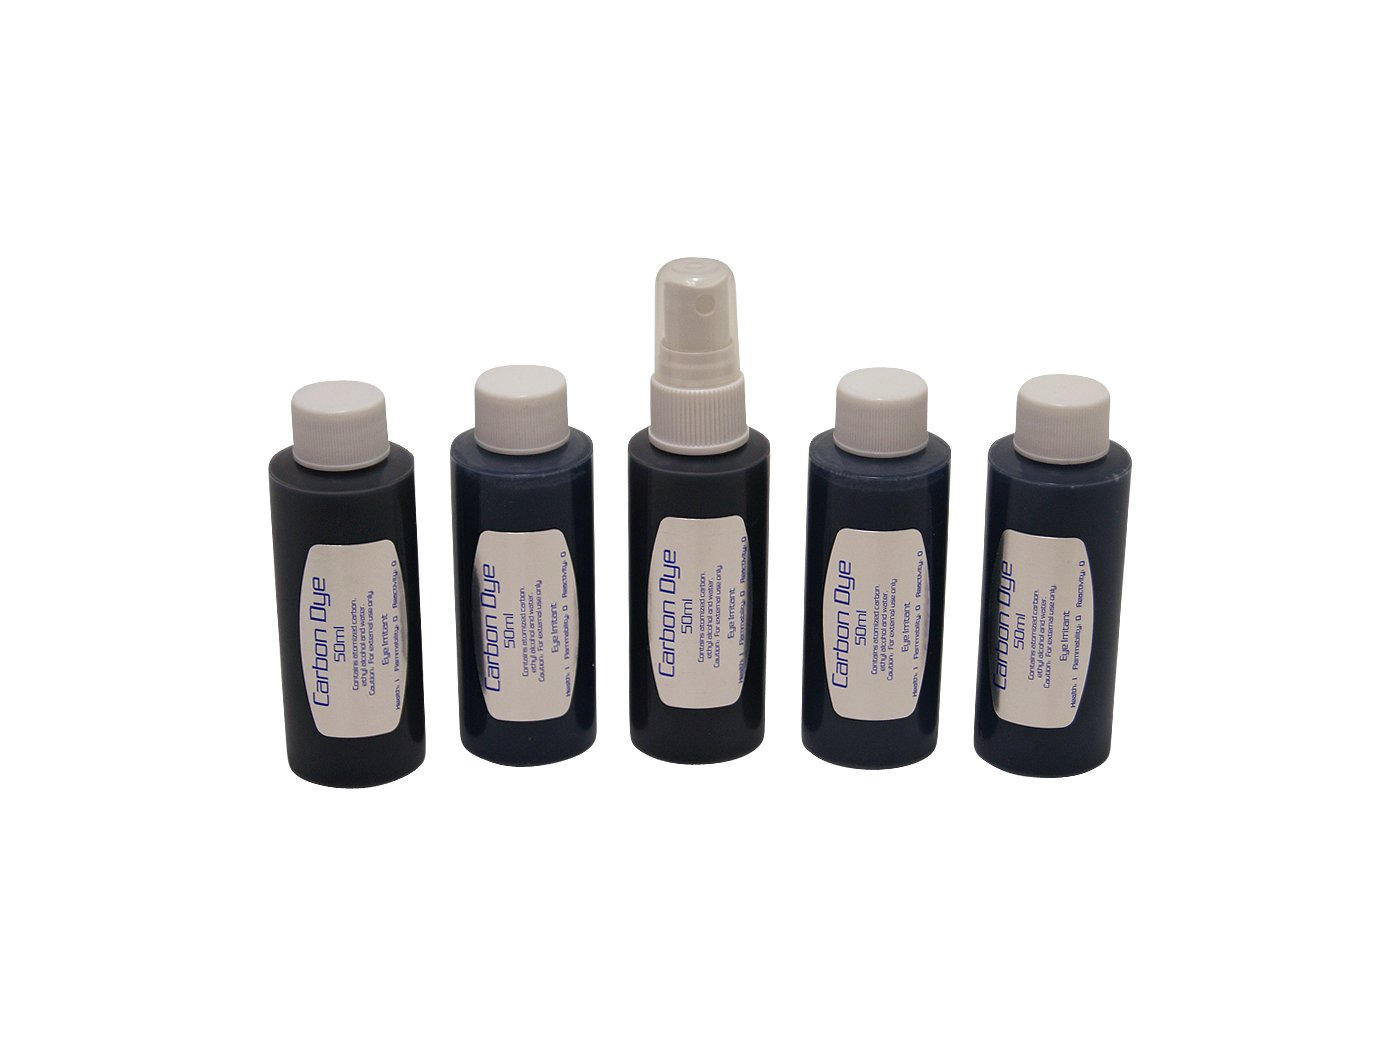 Carbon Dye 250ml for Laser and IPL Permaent Hair Removal Machines, Systems, Devices by Biotechnique Avance (Image #1)